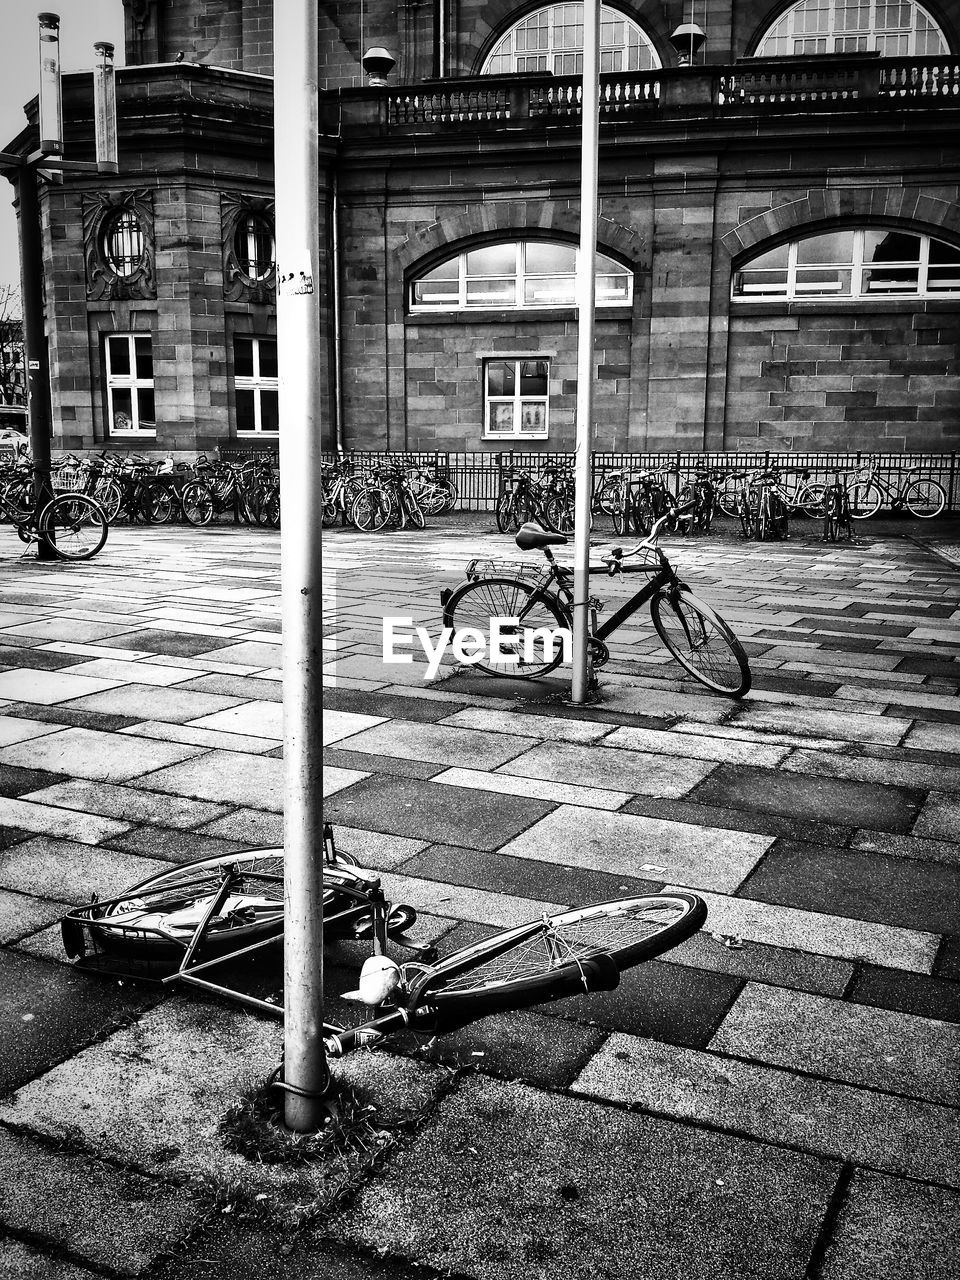 bicycle, transportation, mode of transport, built structure, architecture, land vehicle, bicycle rack, day, outdoors, building exterior, stationary, city, no people